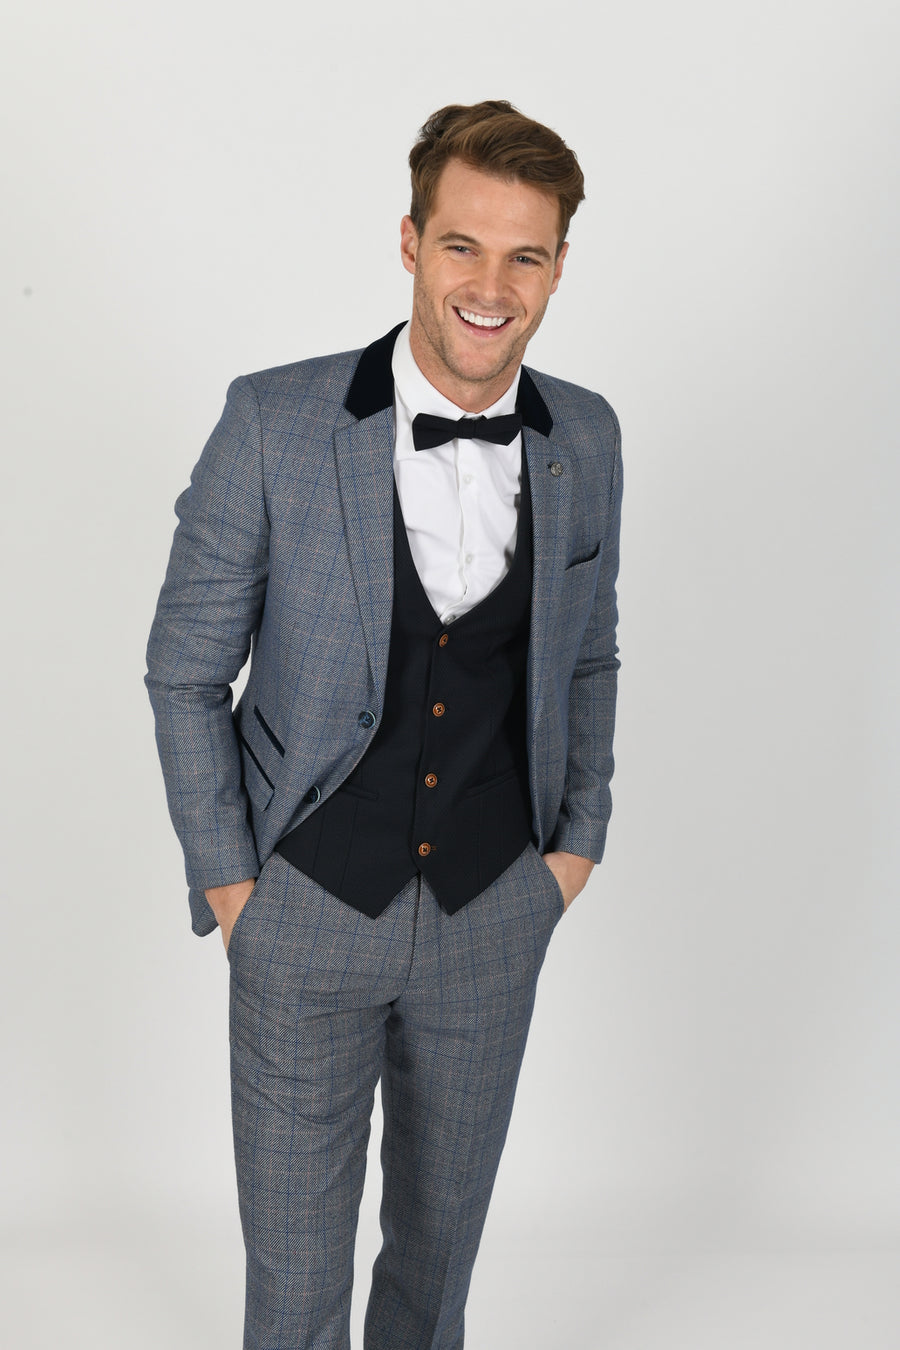 Hilton Suit w/ Kelly Black Waistcoat - Wedding Suit Direct